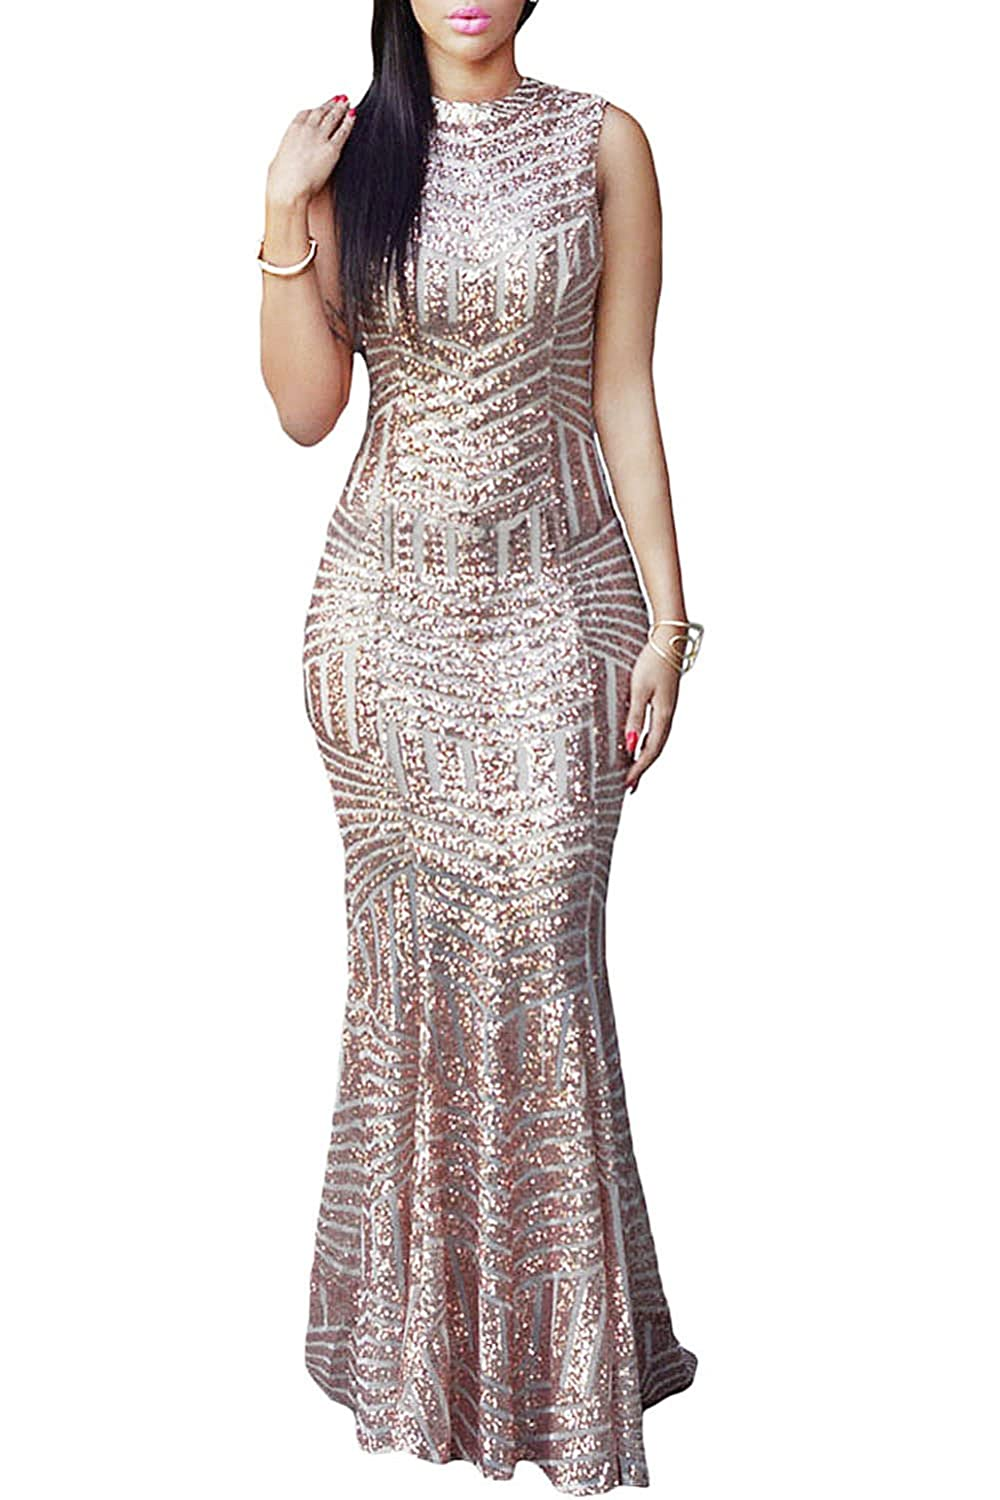 LOSRLY Womens Glitter High Split Sequin Maxi Long Party Evening Dress Prime YL60881